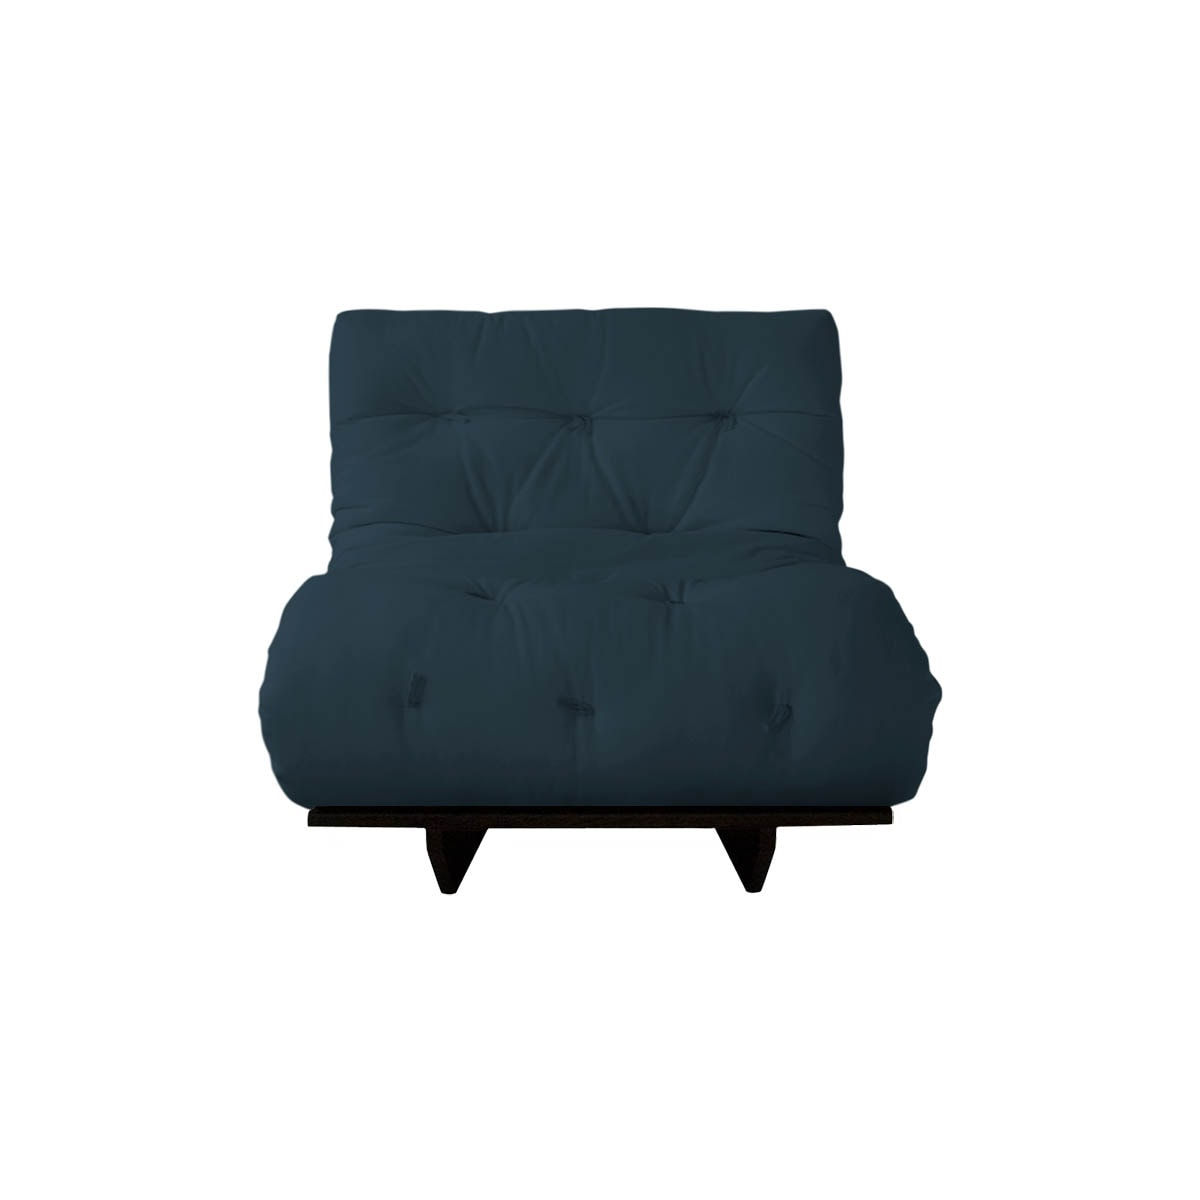 Futon sofa cama futon company for Sofa cama de pared